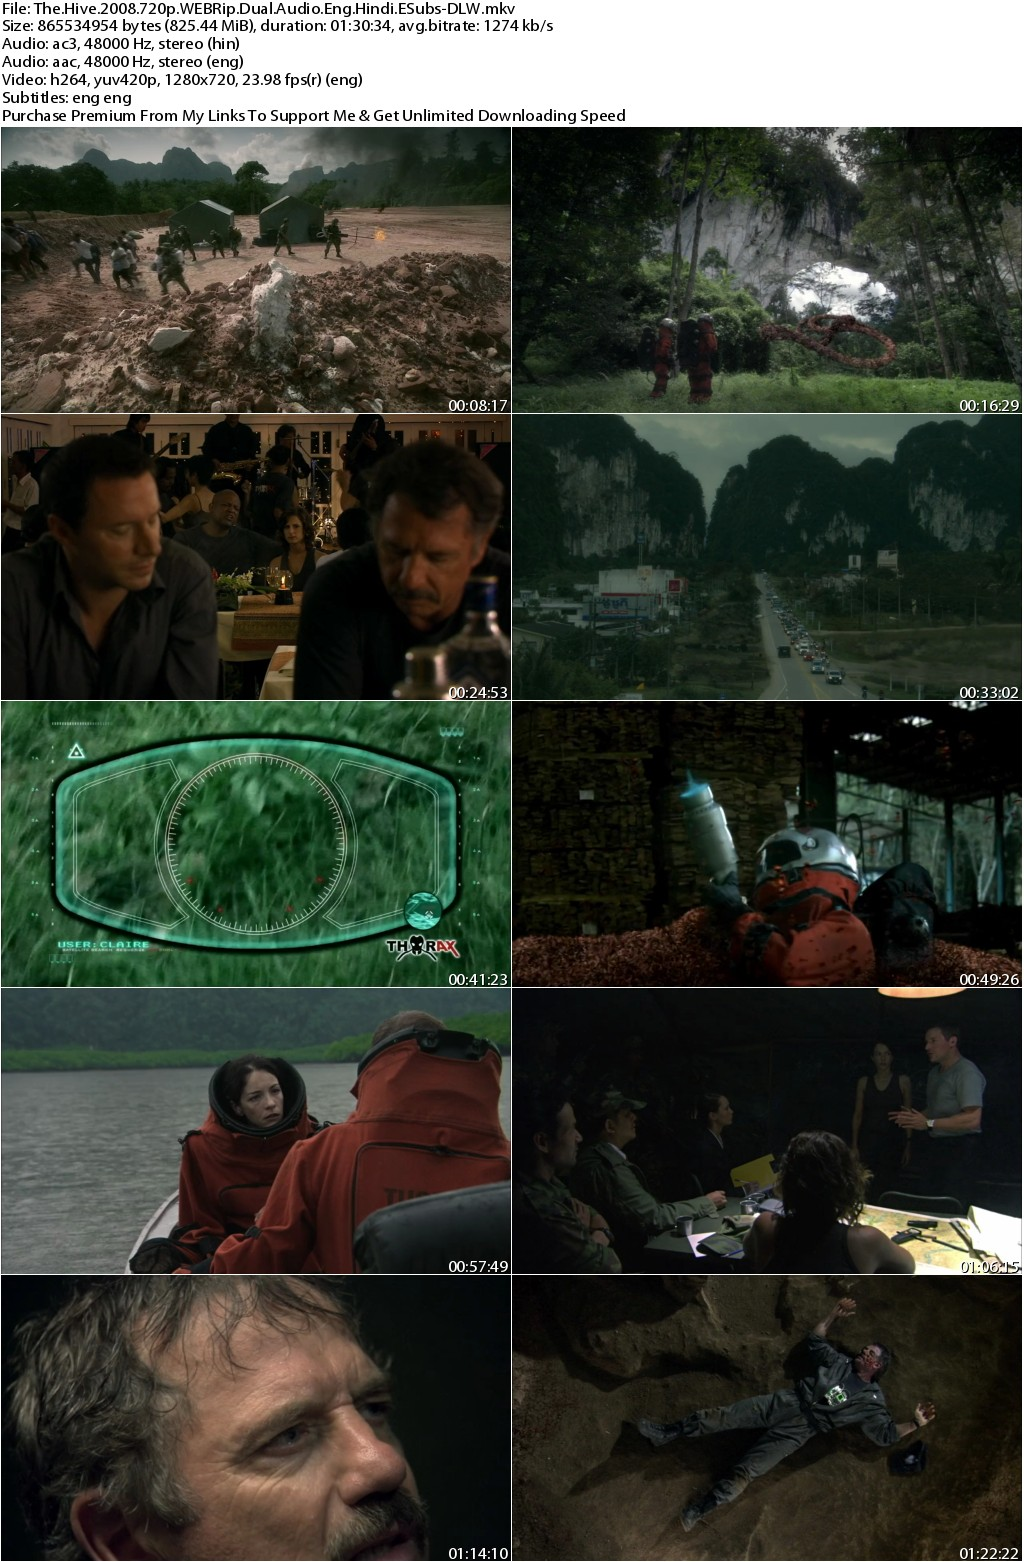 The Hive (2008) 720p WEBRip Dual Audio Eng Hindi ESubs-DLW